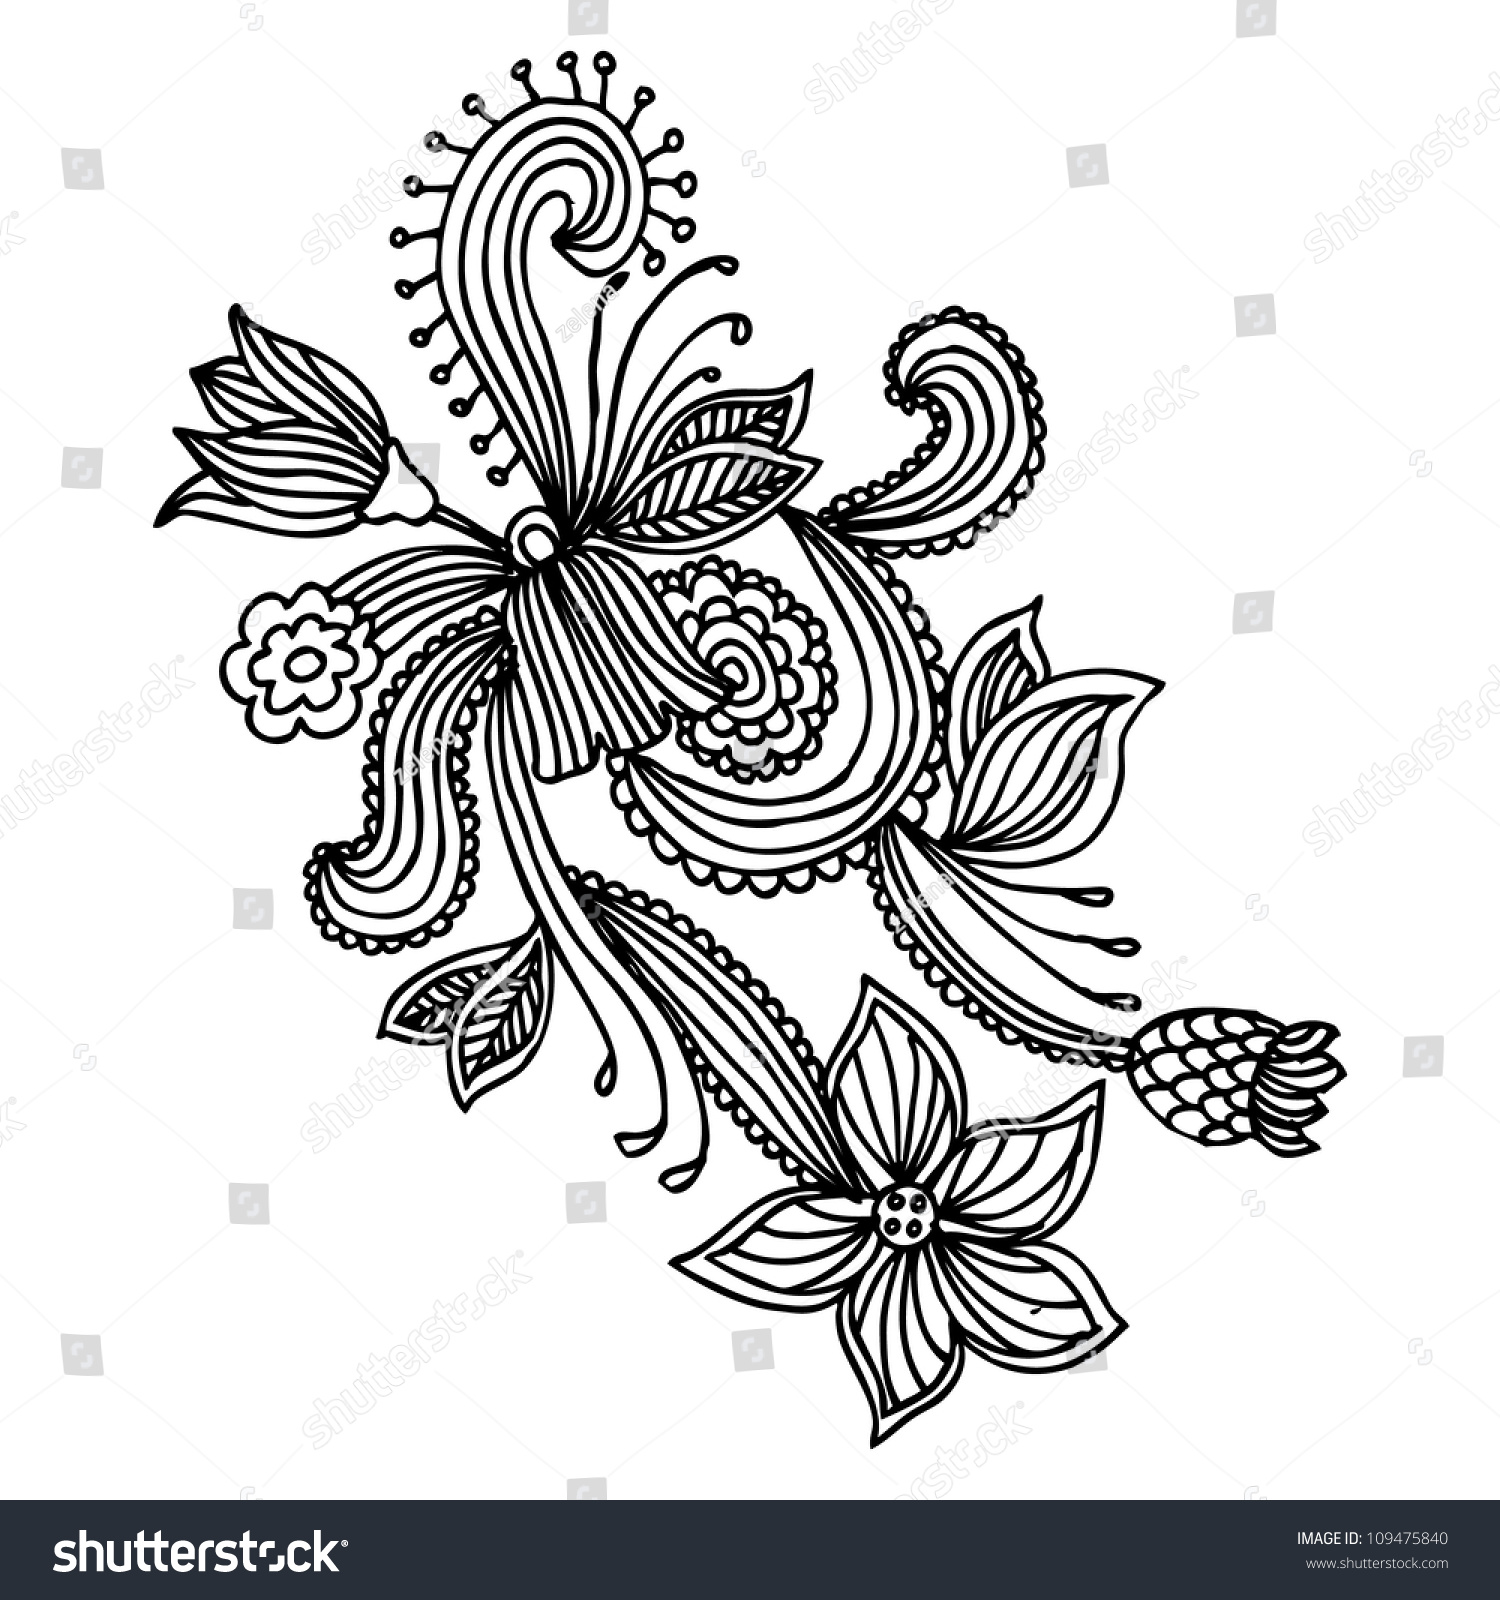 Line Art Flower Vector : Hand draw line art ornate flower stock vector